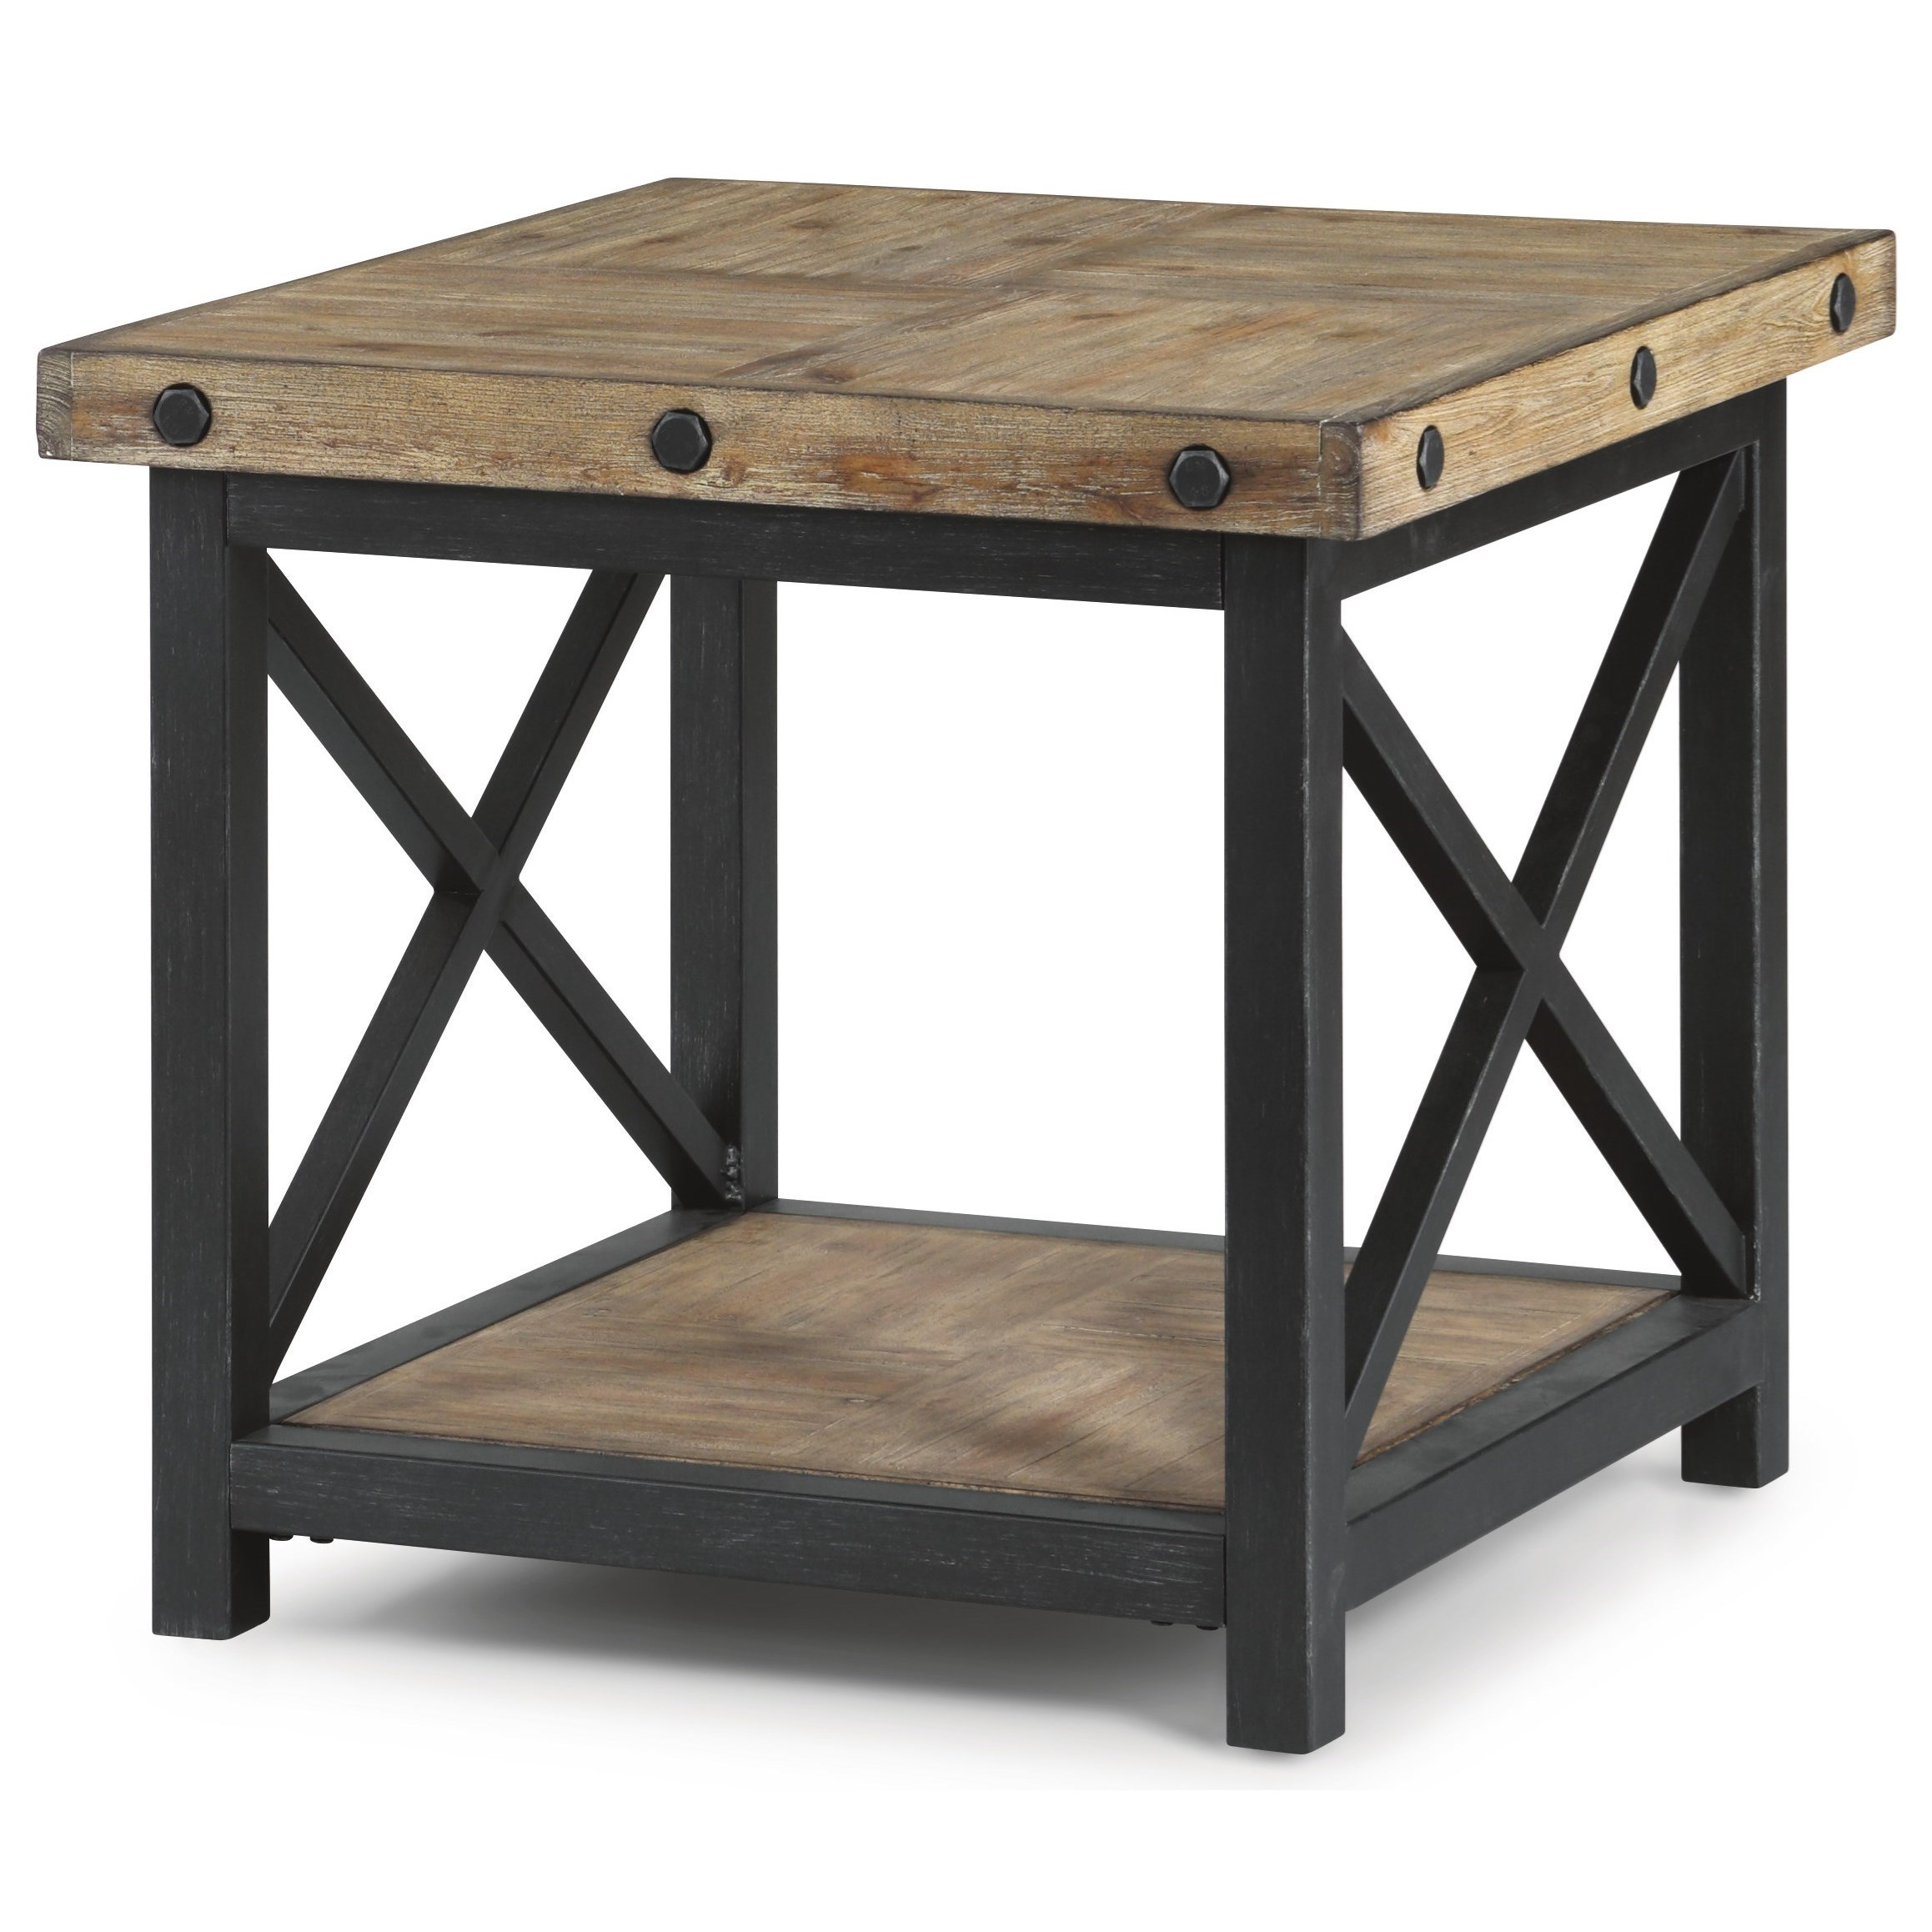 Hammermill Square End Table by Flexsteel at Crowley Furniture & Mattress